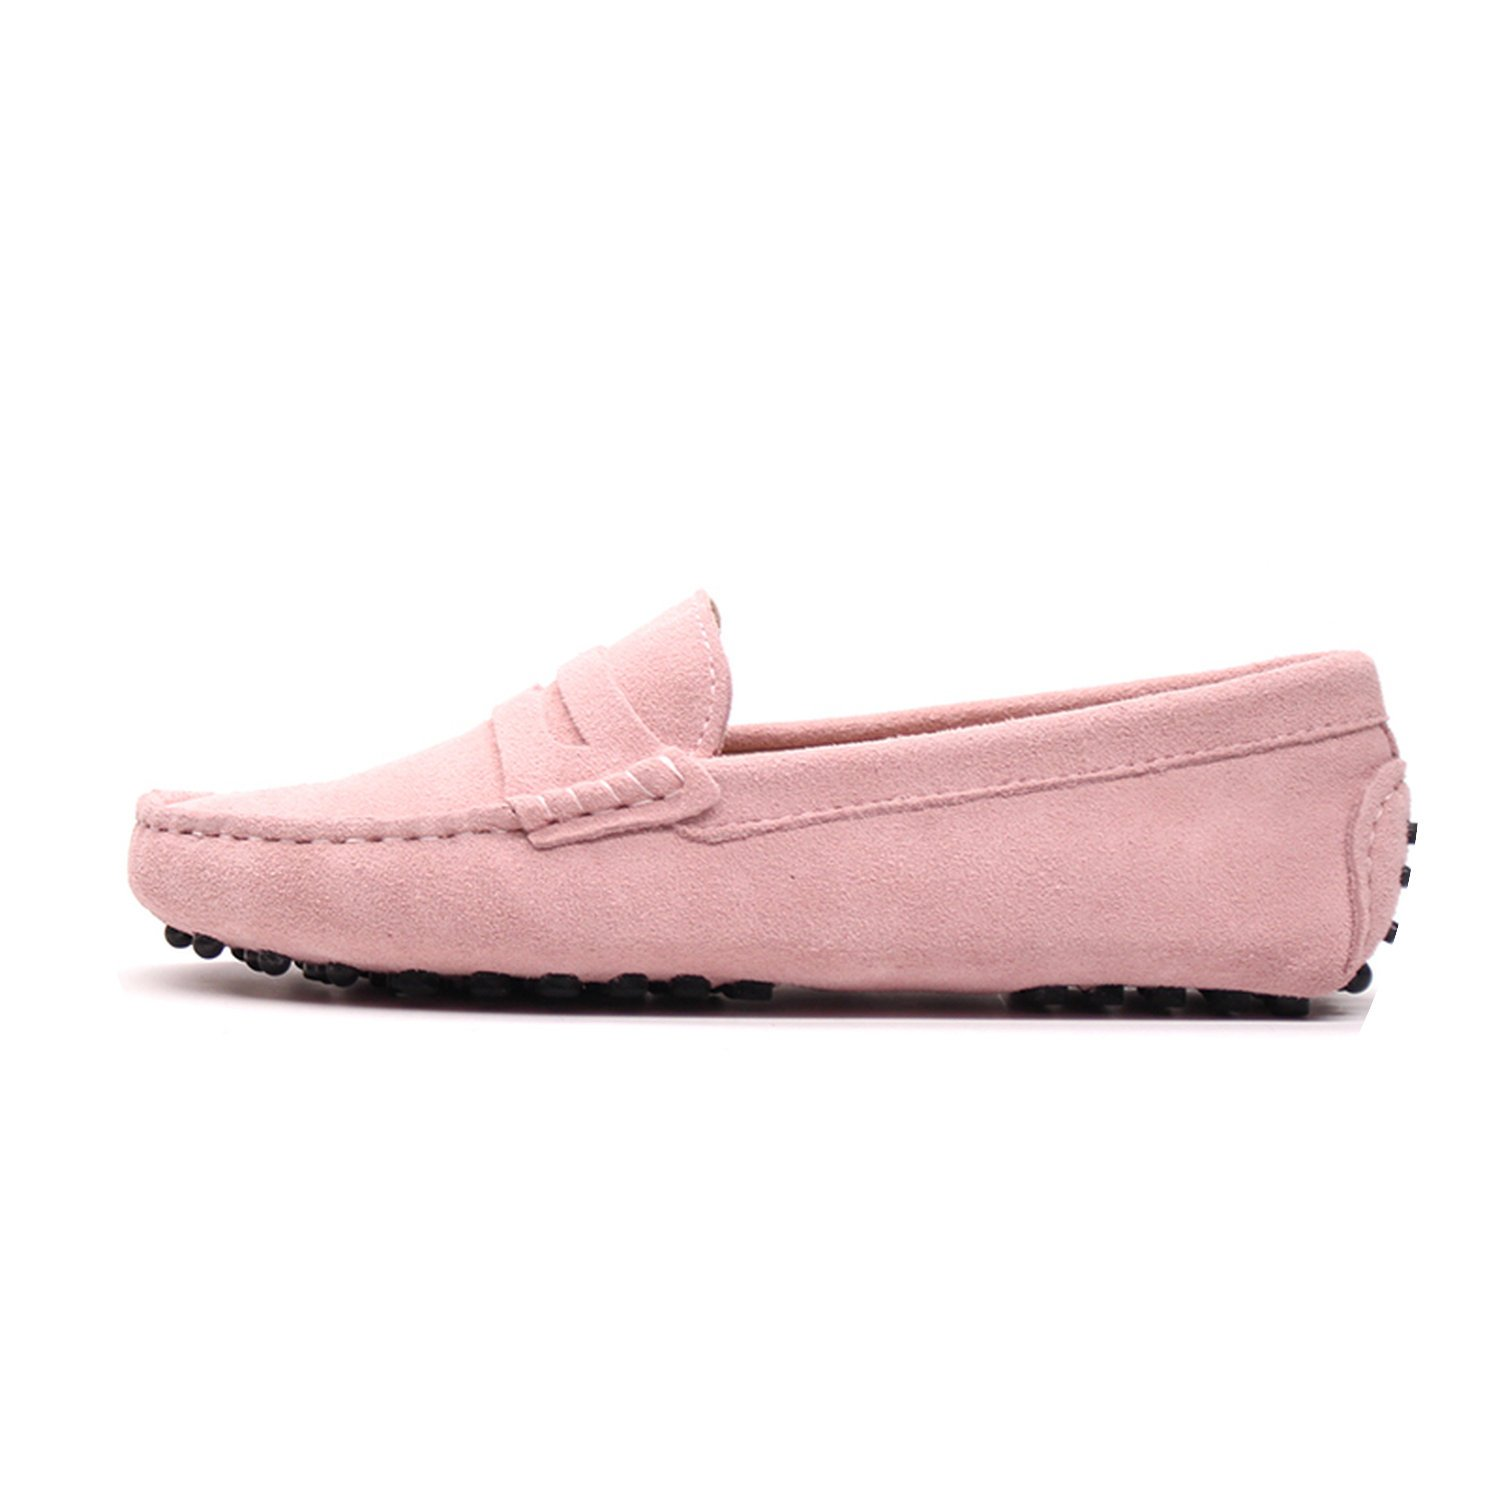 2018 New Women Flats Genuine Leather Driving Shoes Summer Women Casual Shoes B07DV5GRKB 6 B(M) US|Pink